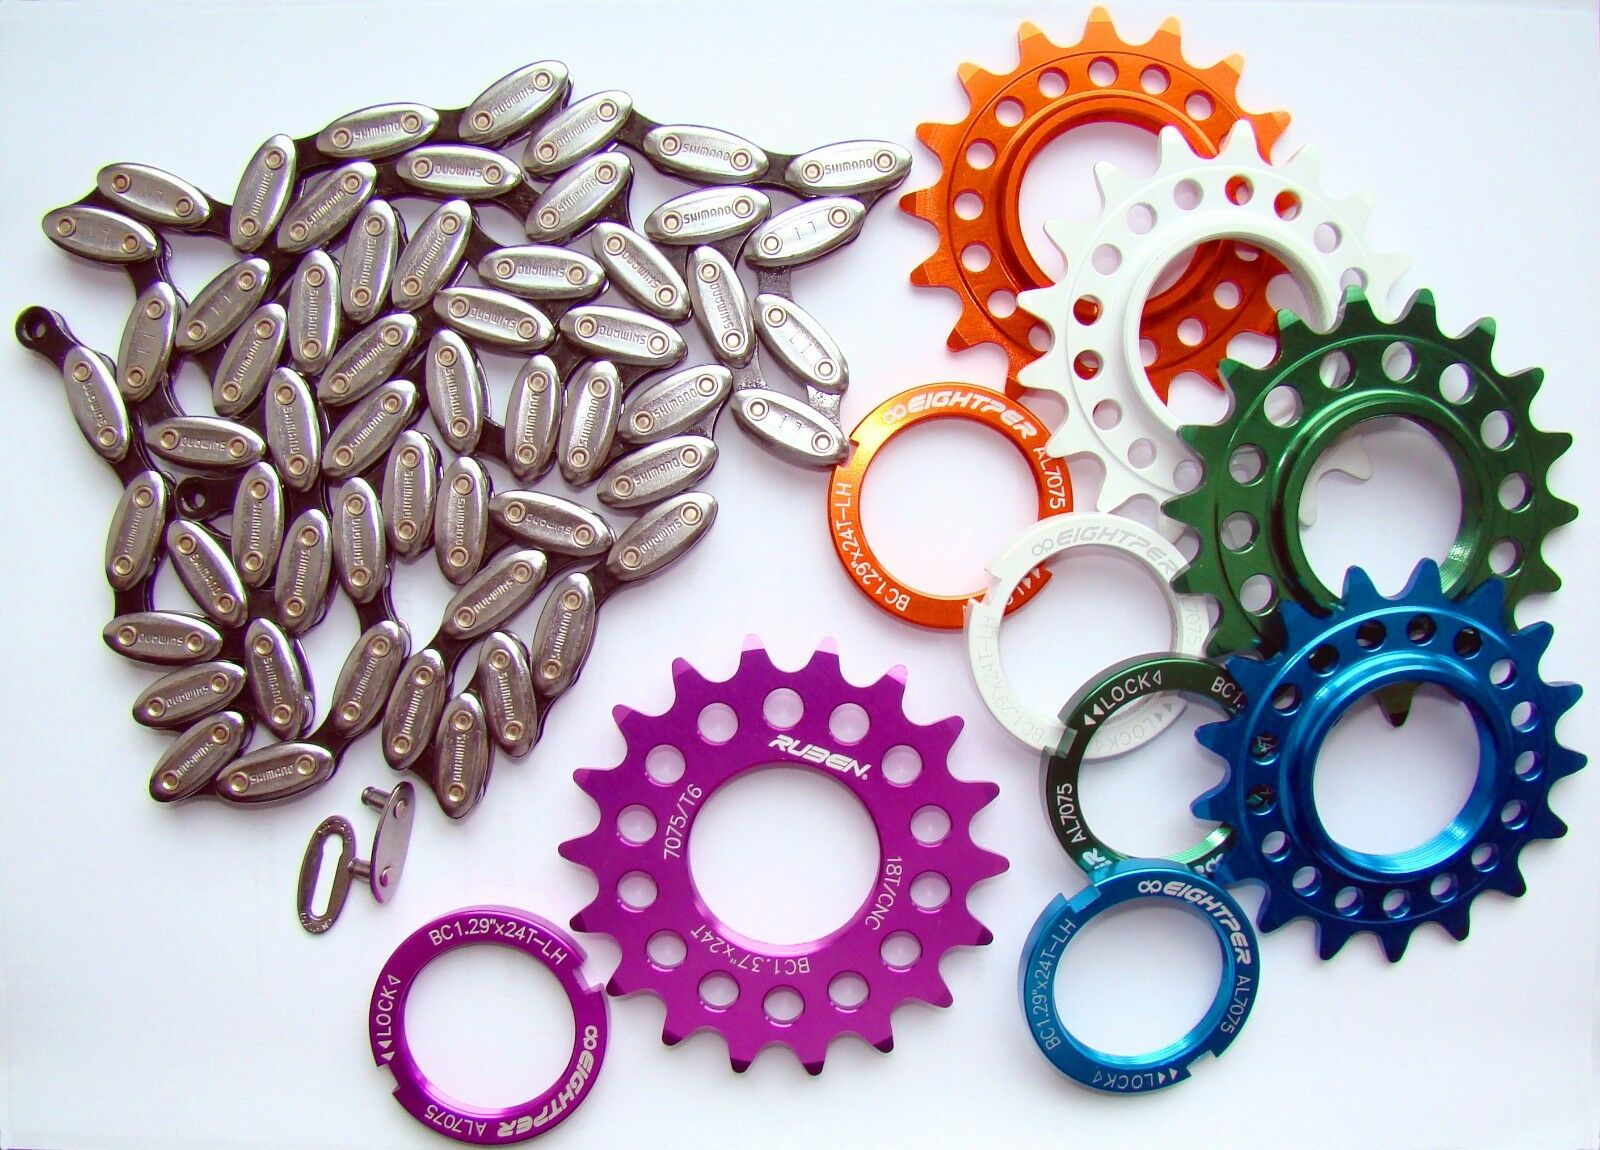 Set chain SHIMANO CN-NX01 + COG CNC 7075 Blau 17T + Lock ring fixed gear fixie